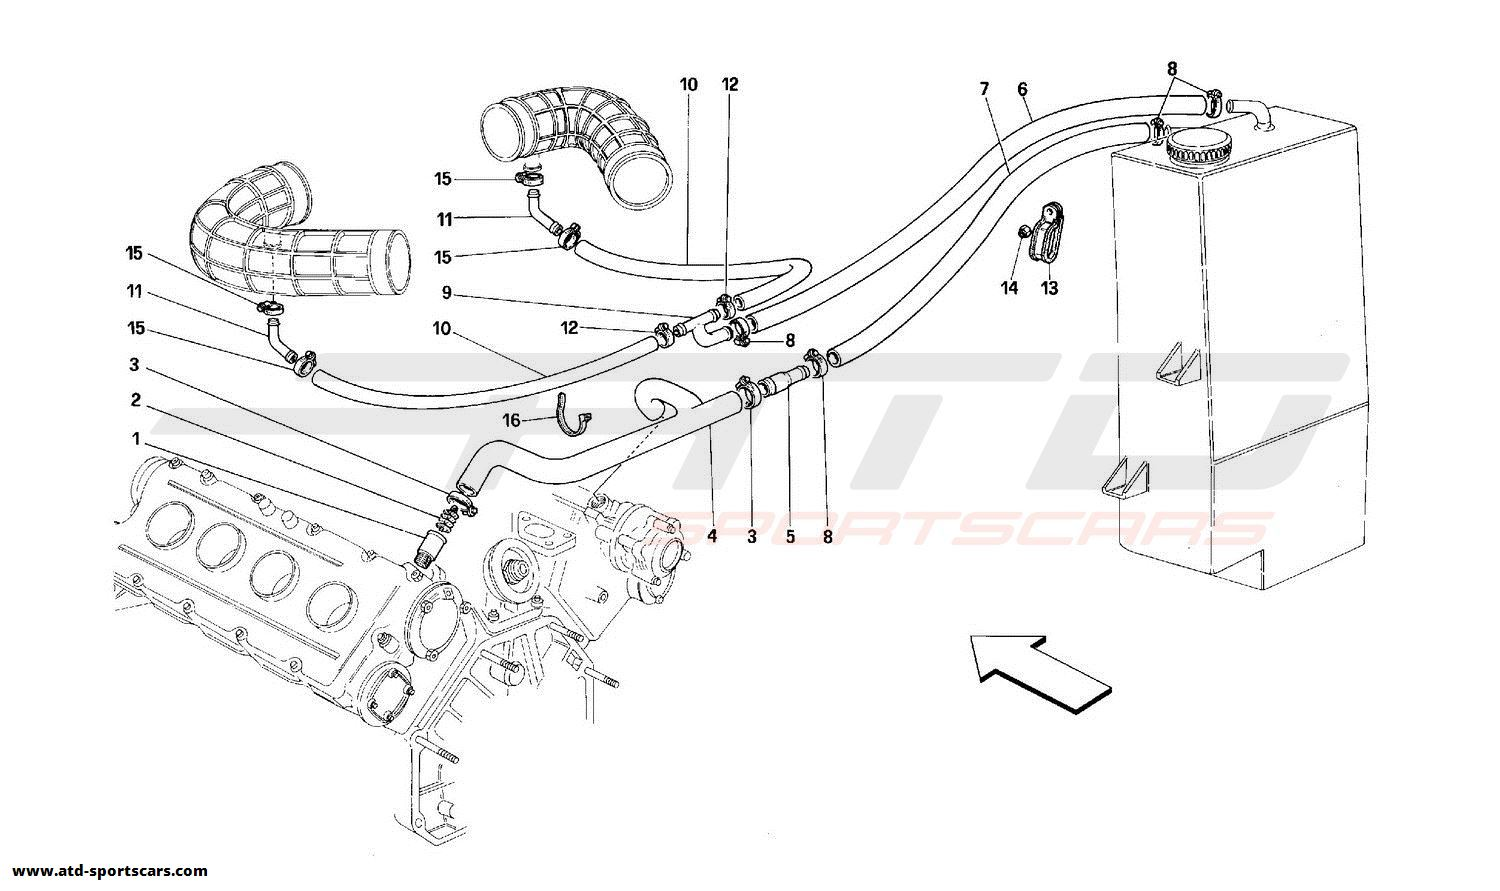 Ferrari 348 BLOW-BY SYSTEM